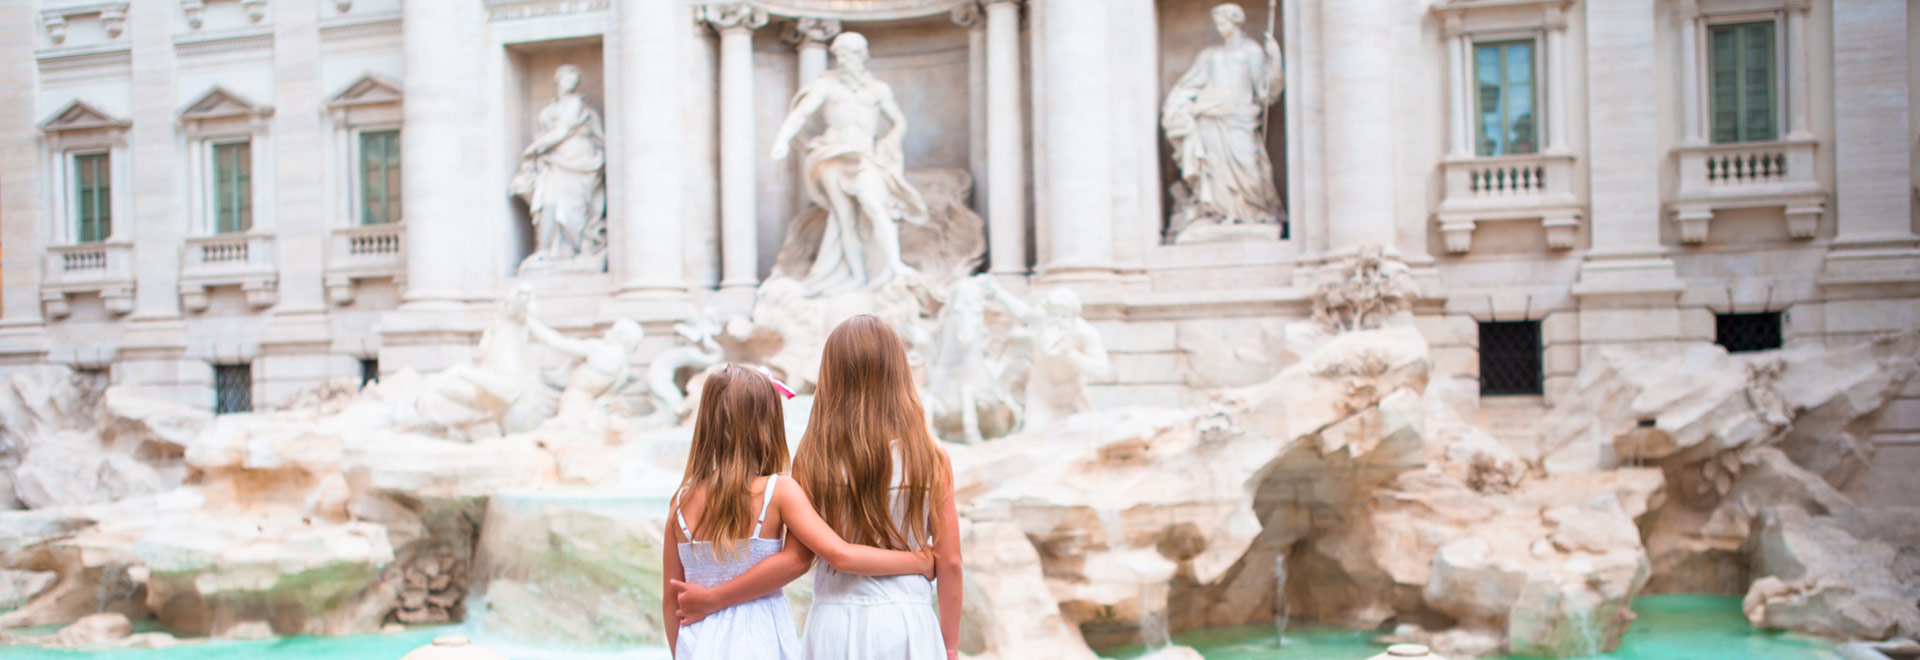 Europe Family Italy Rome Trevi Fountain MH